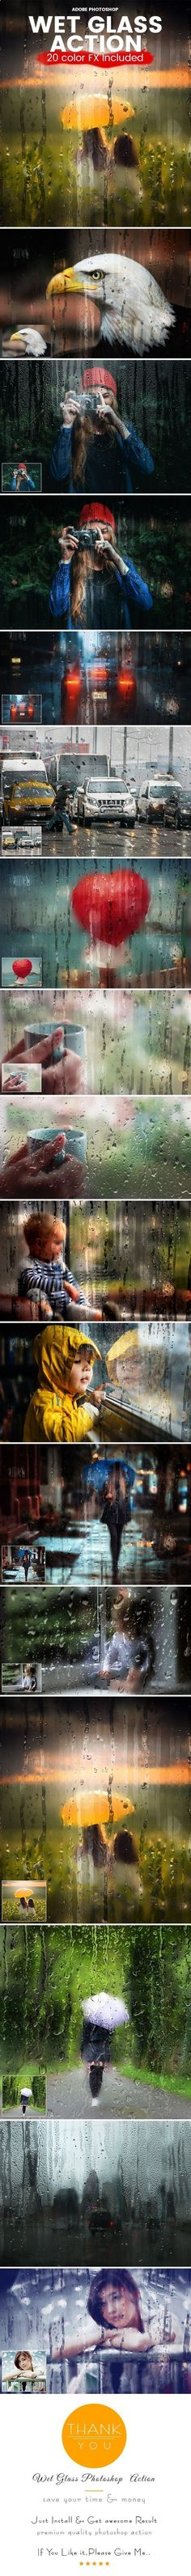 Wet Glass Photoshop Action — Photoshop ATN #effects #rainy day • Available here ➝ graphicriver.net/...